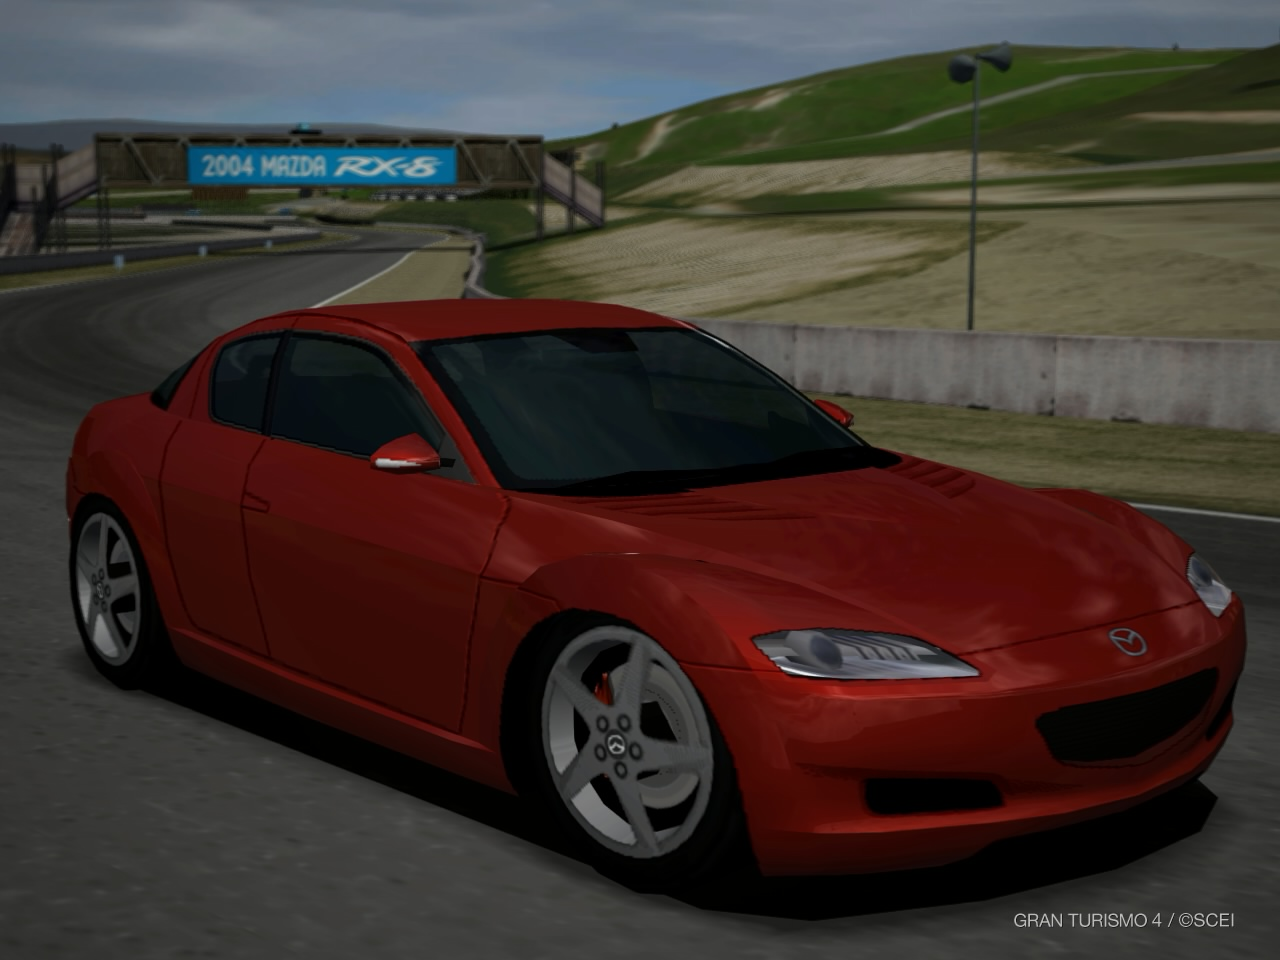 https://vignette.wikia.nocookie.net/gran-turismo/images/4/47/RX_8_Concept_%28Type-I%29_%2701_Revised.JPG/revision/latest?cb=20180121090551